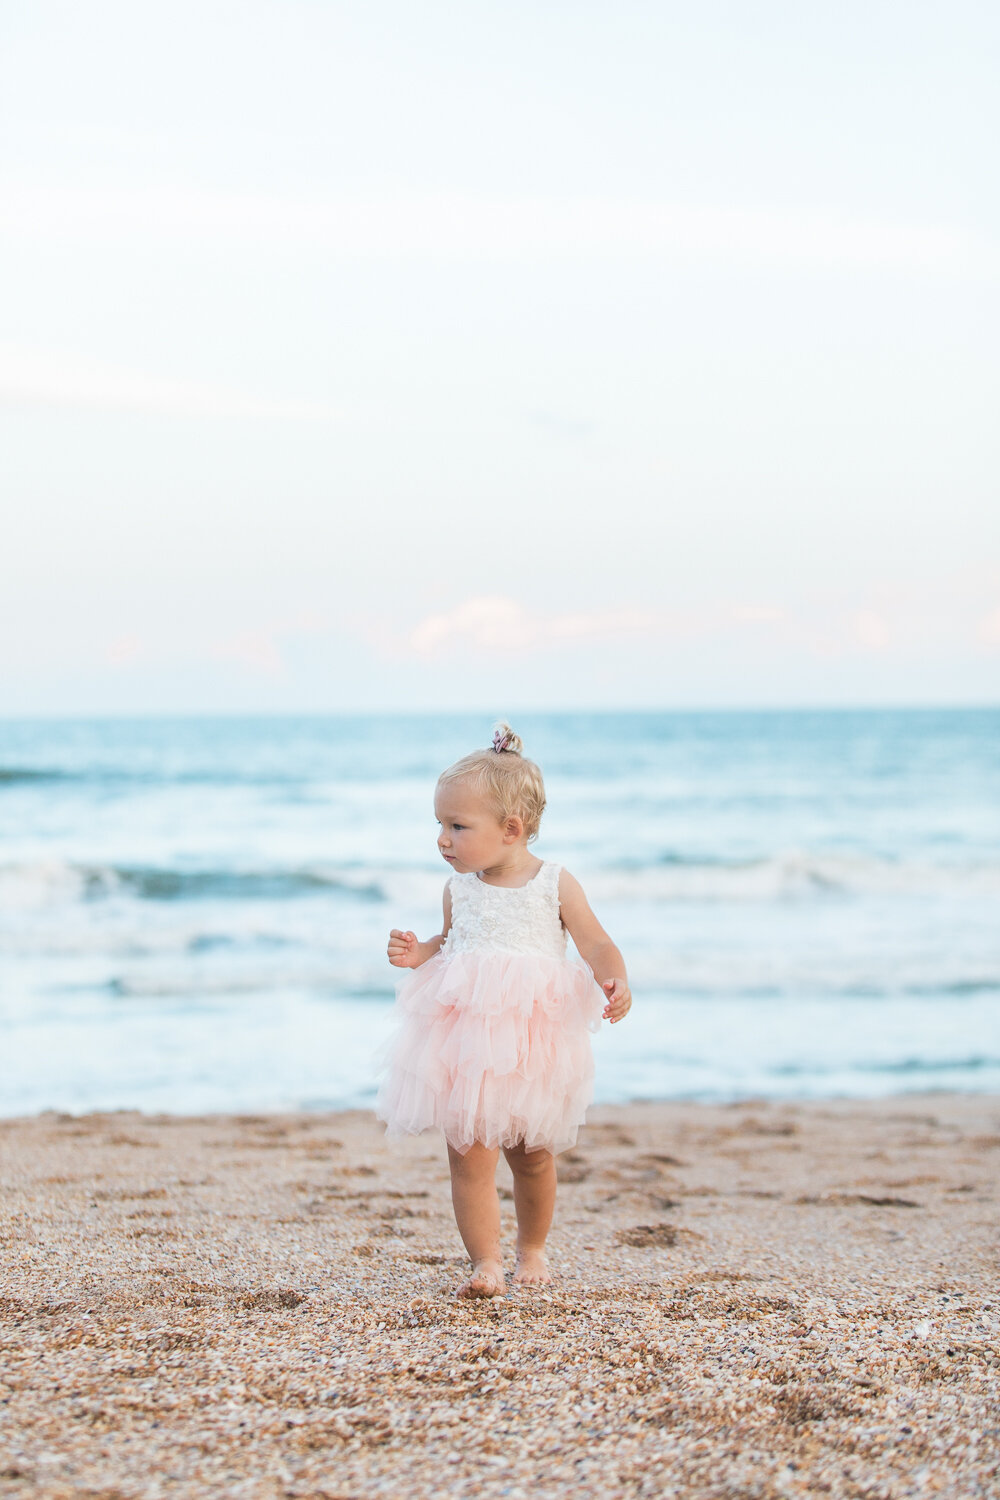 Guana beach sunset photoshoot with a toddler girl wearing a lace dress with tulle skirt - available for rent